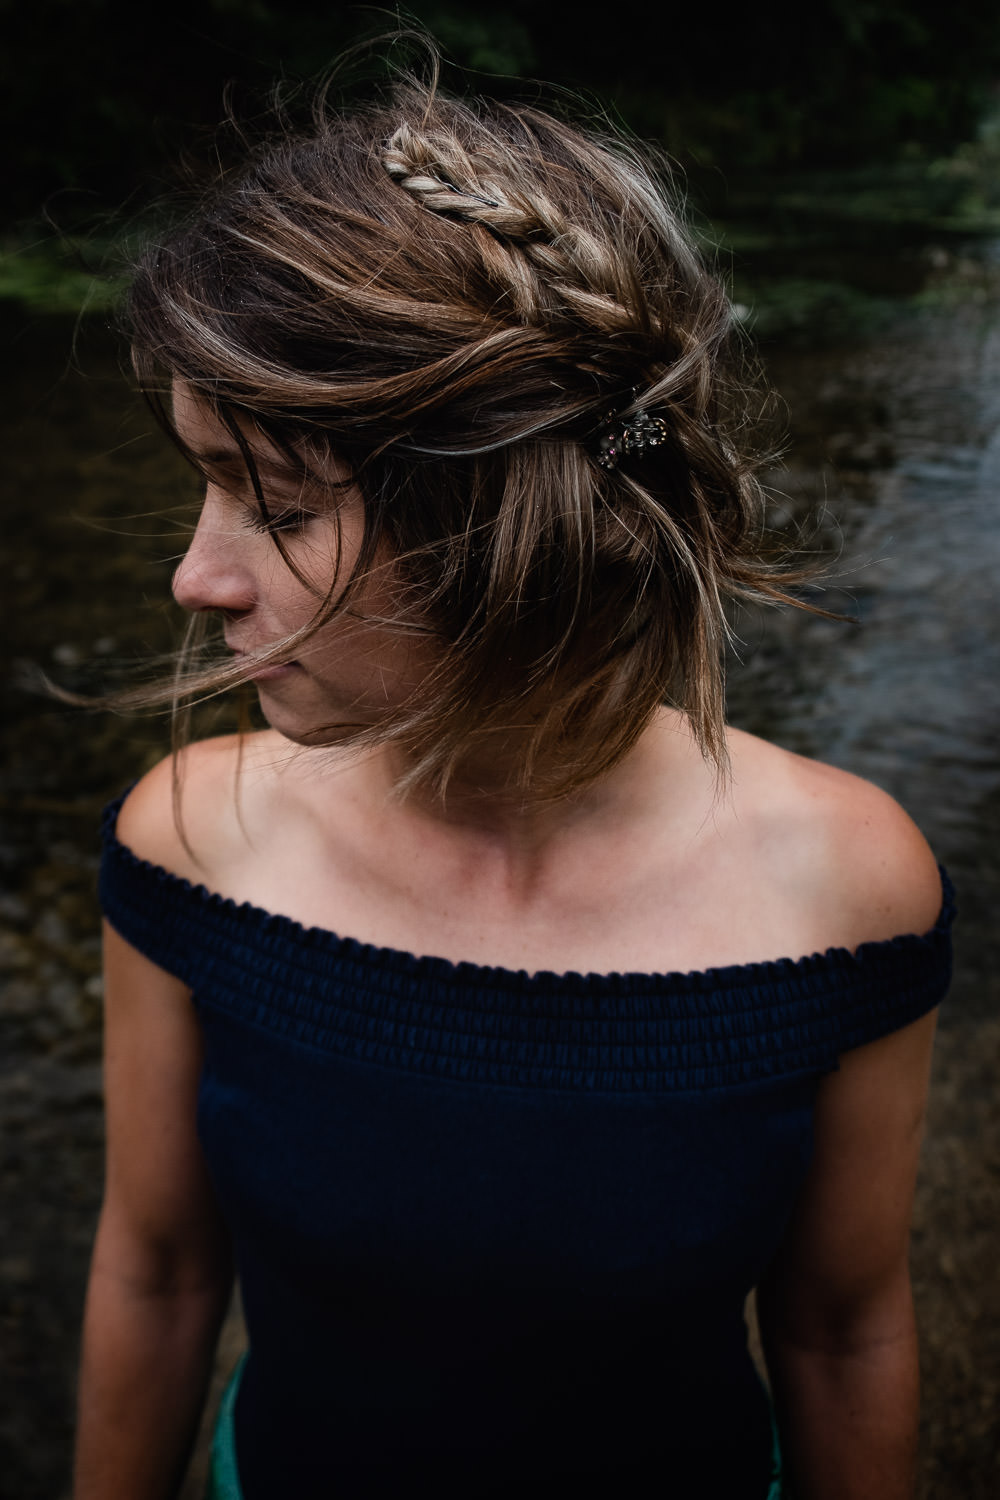 Portrait of a woman, taken from above, stood in shallow water at Warleigh Weir, as the wind blow through her hair.